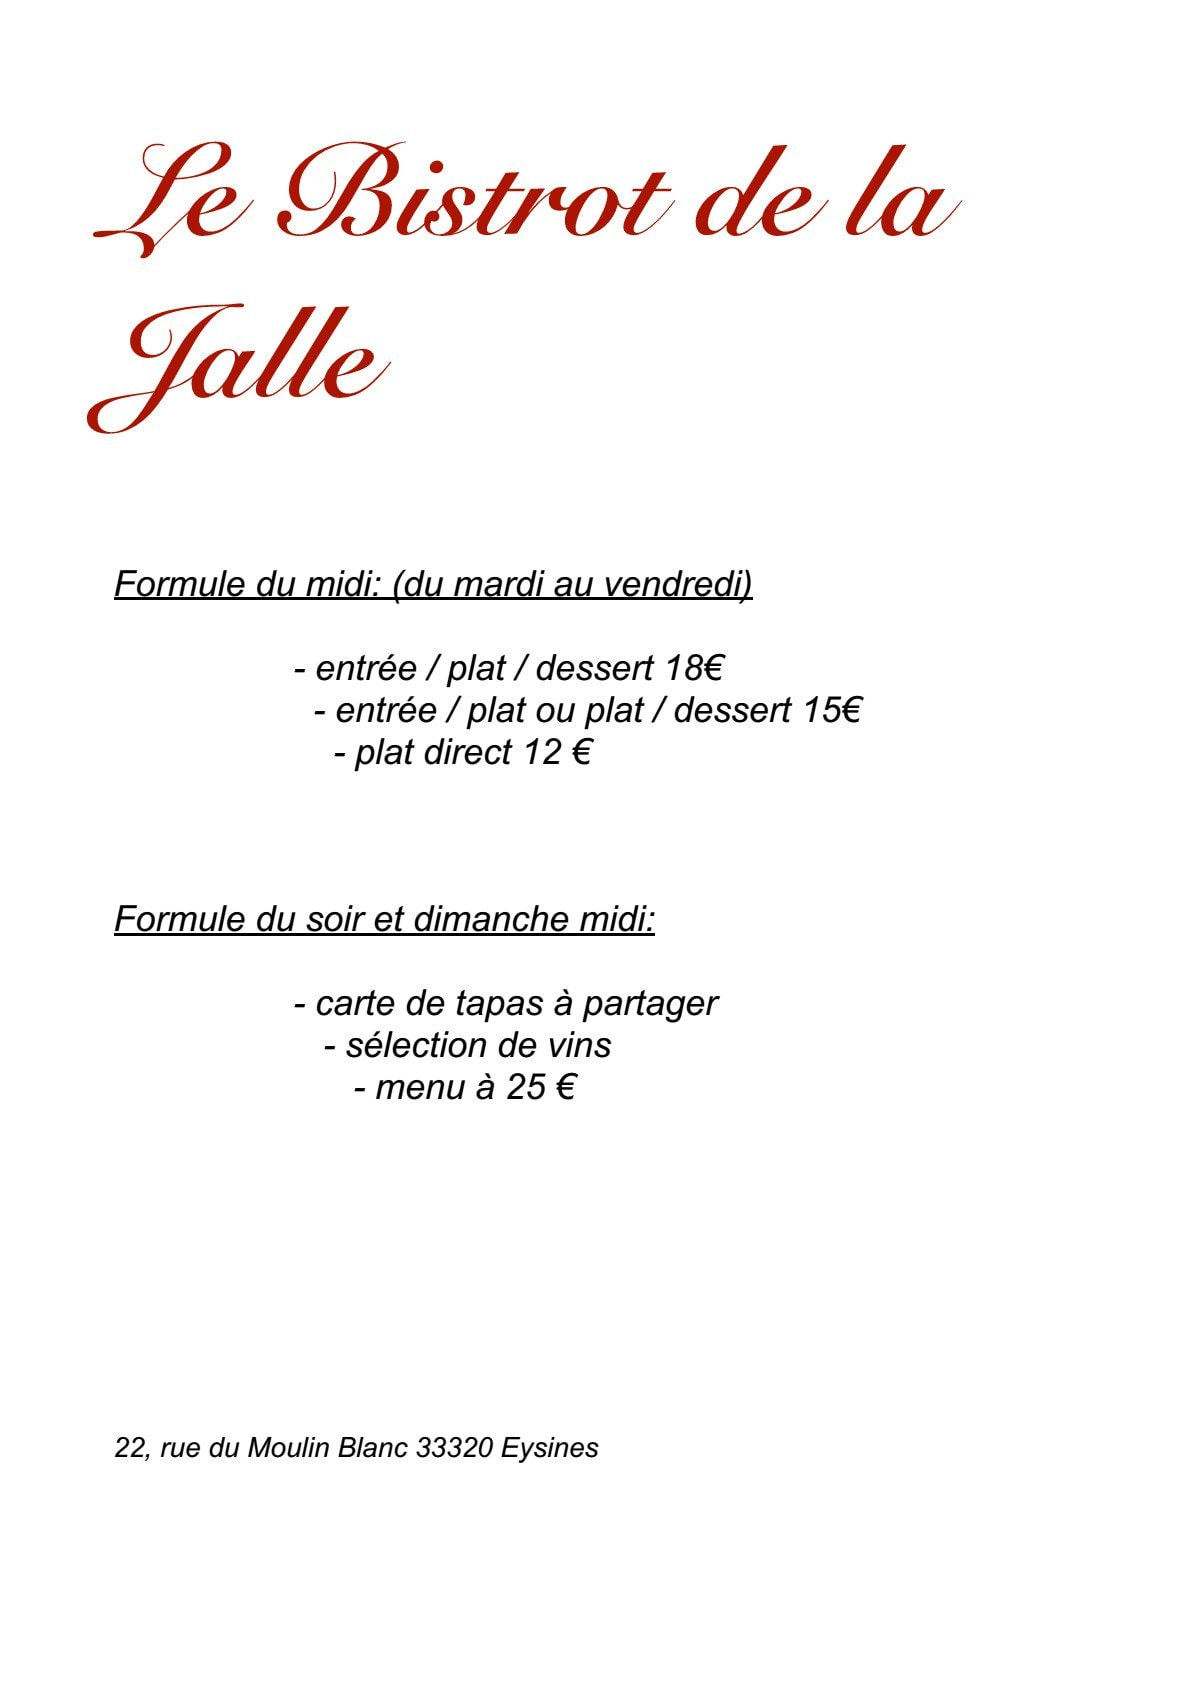 Bistrot de la jalle eysines carte menu et photos for Restaurant eysines